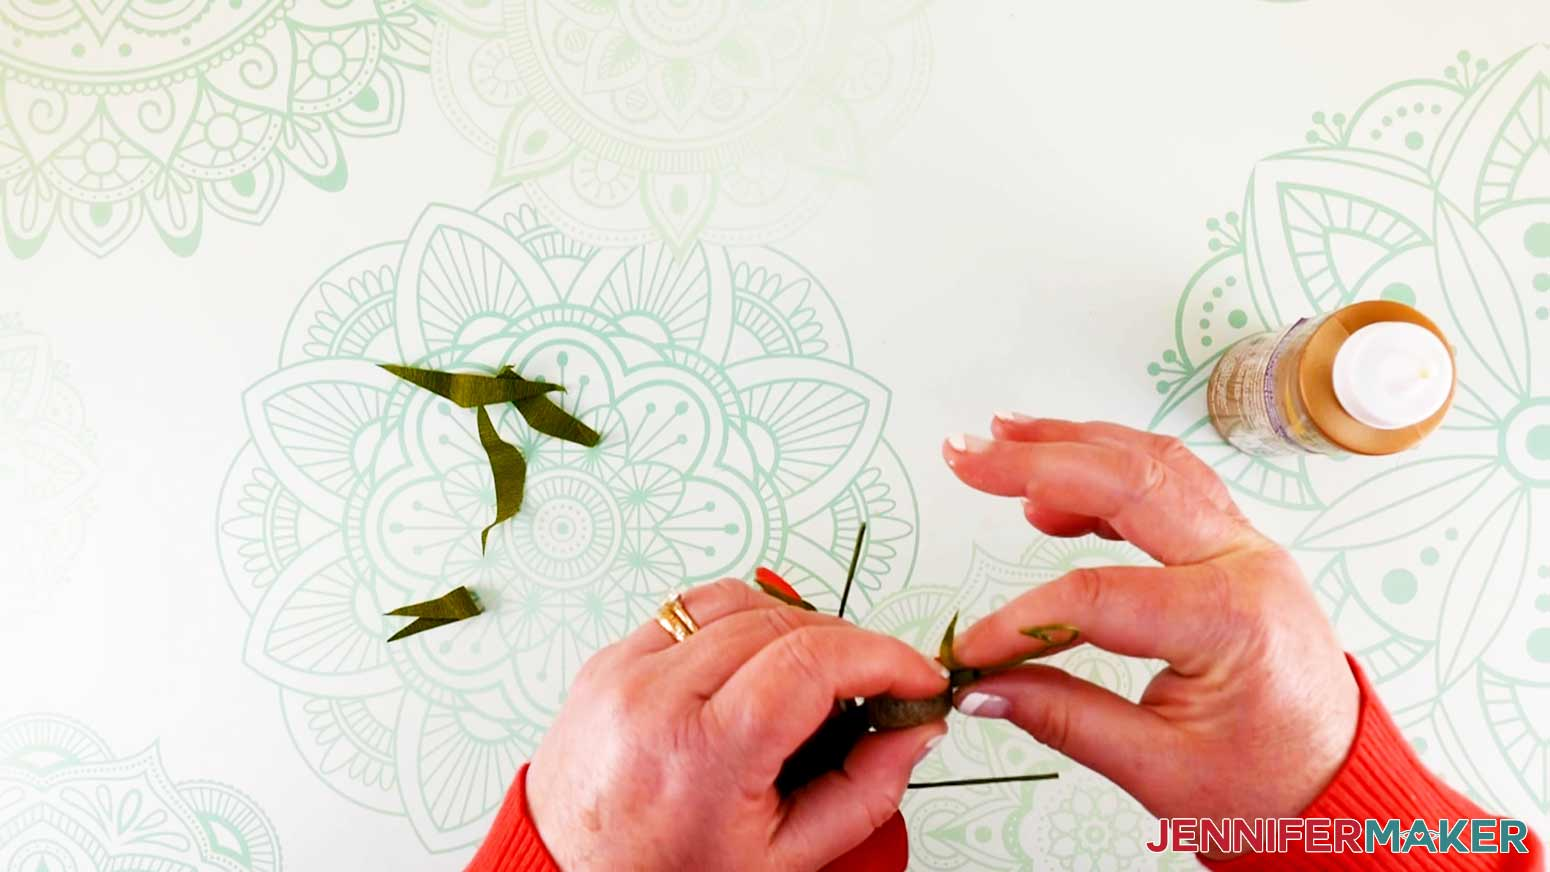 Holding head leaf in place while wrapping other end around wire of flower fairy doll